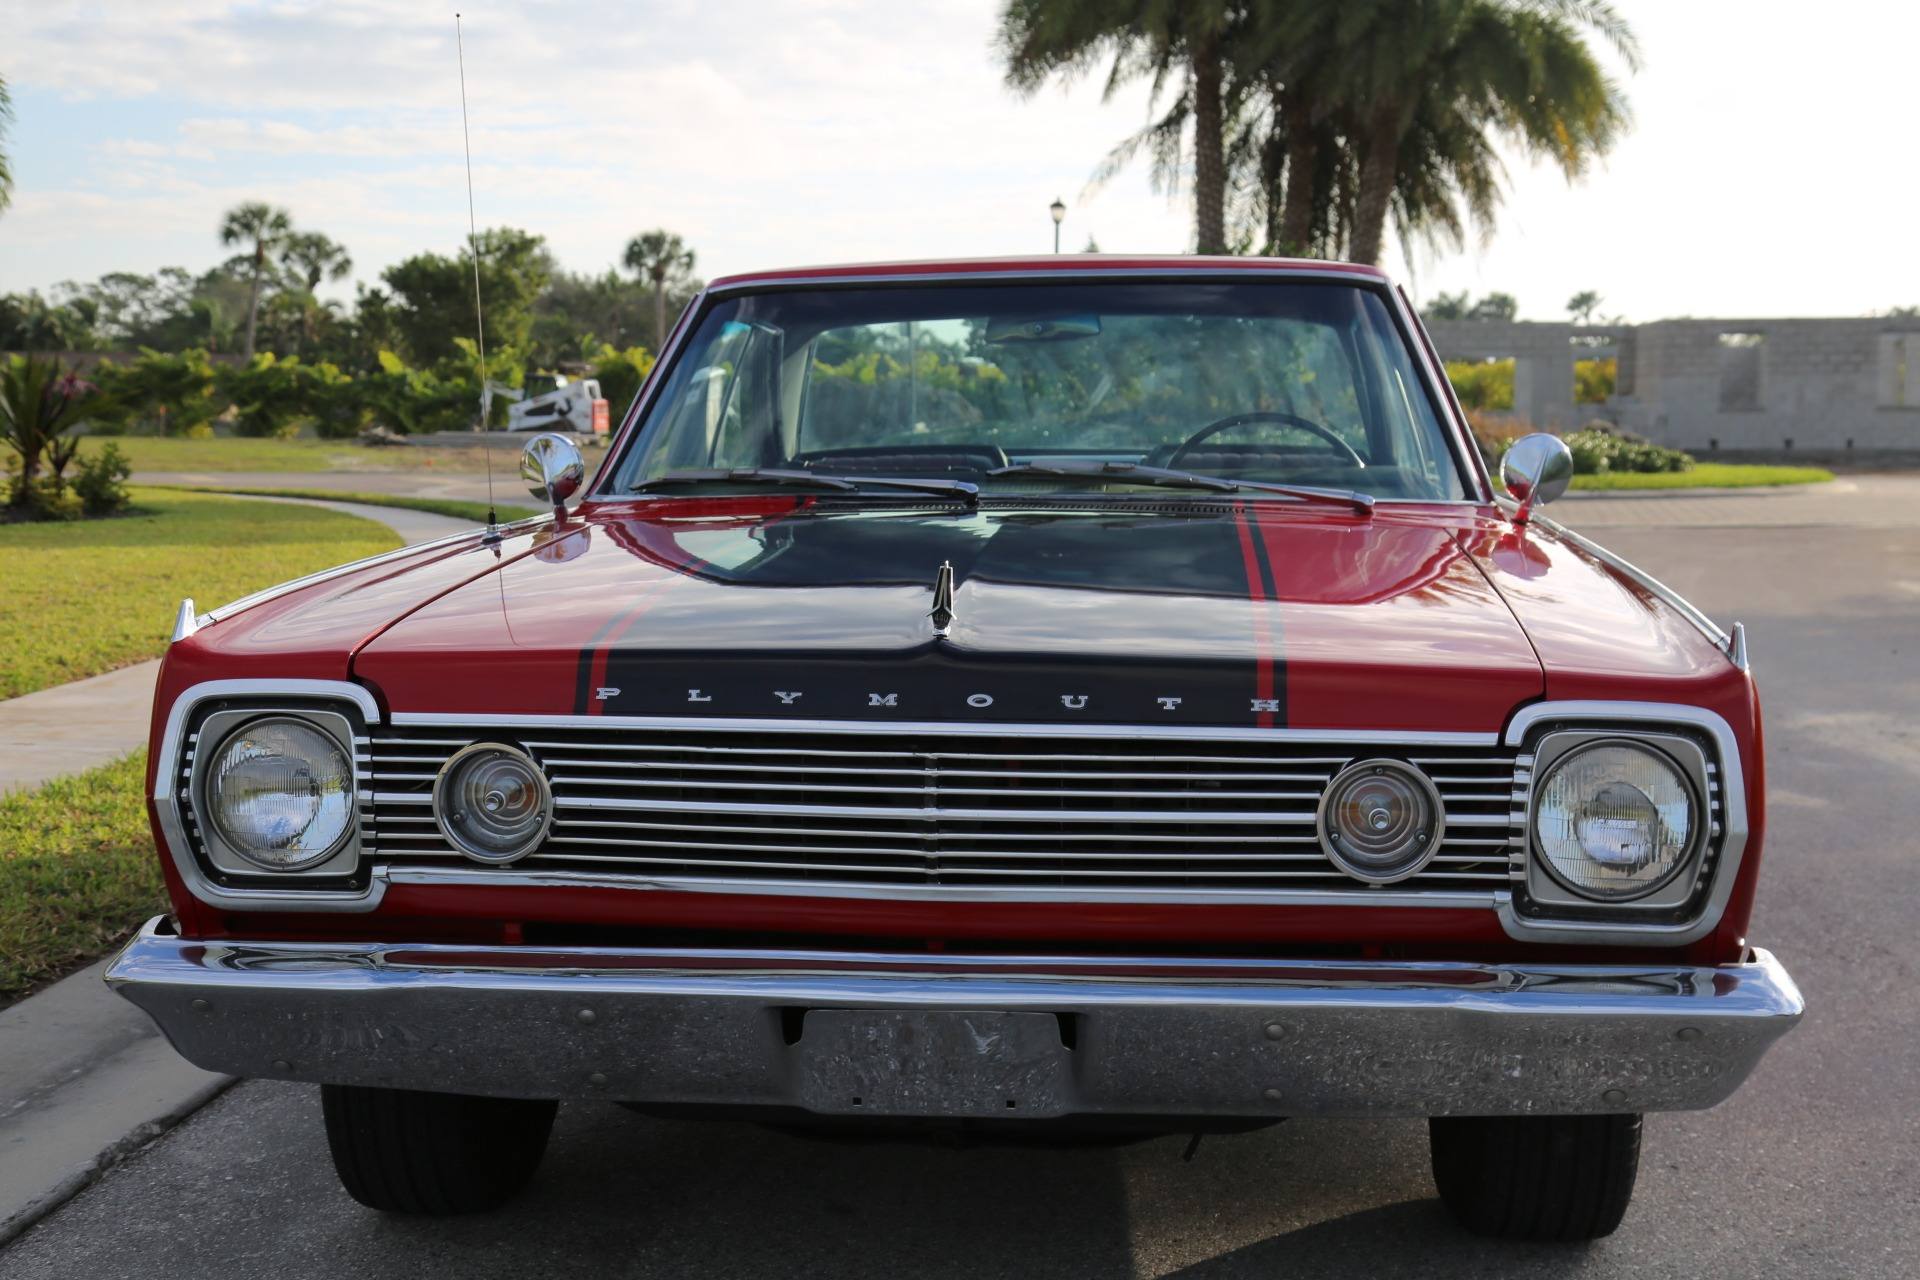 Used 1966 Plymouth Satellite 440 V8 Automatic for sale $19,900 at Muscle Cars for Sale Inc. in Fort Myers FL 33912 5